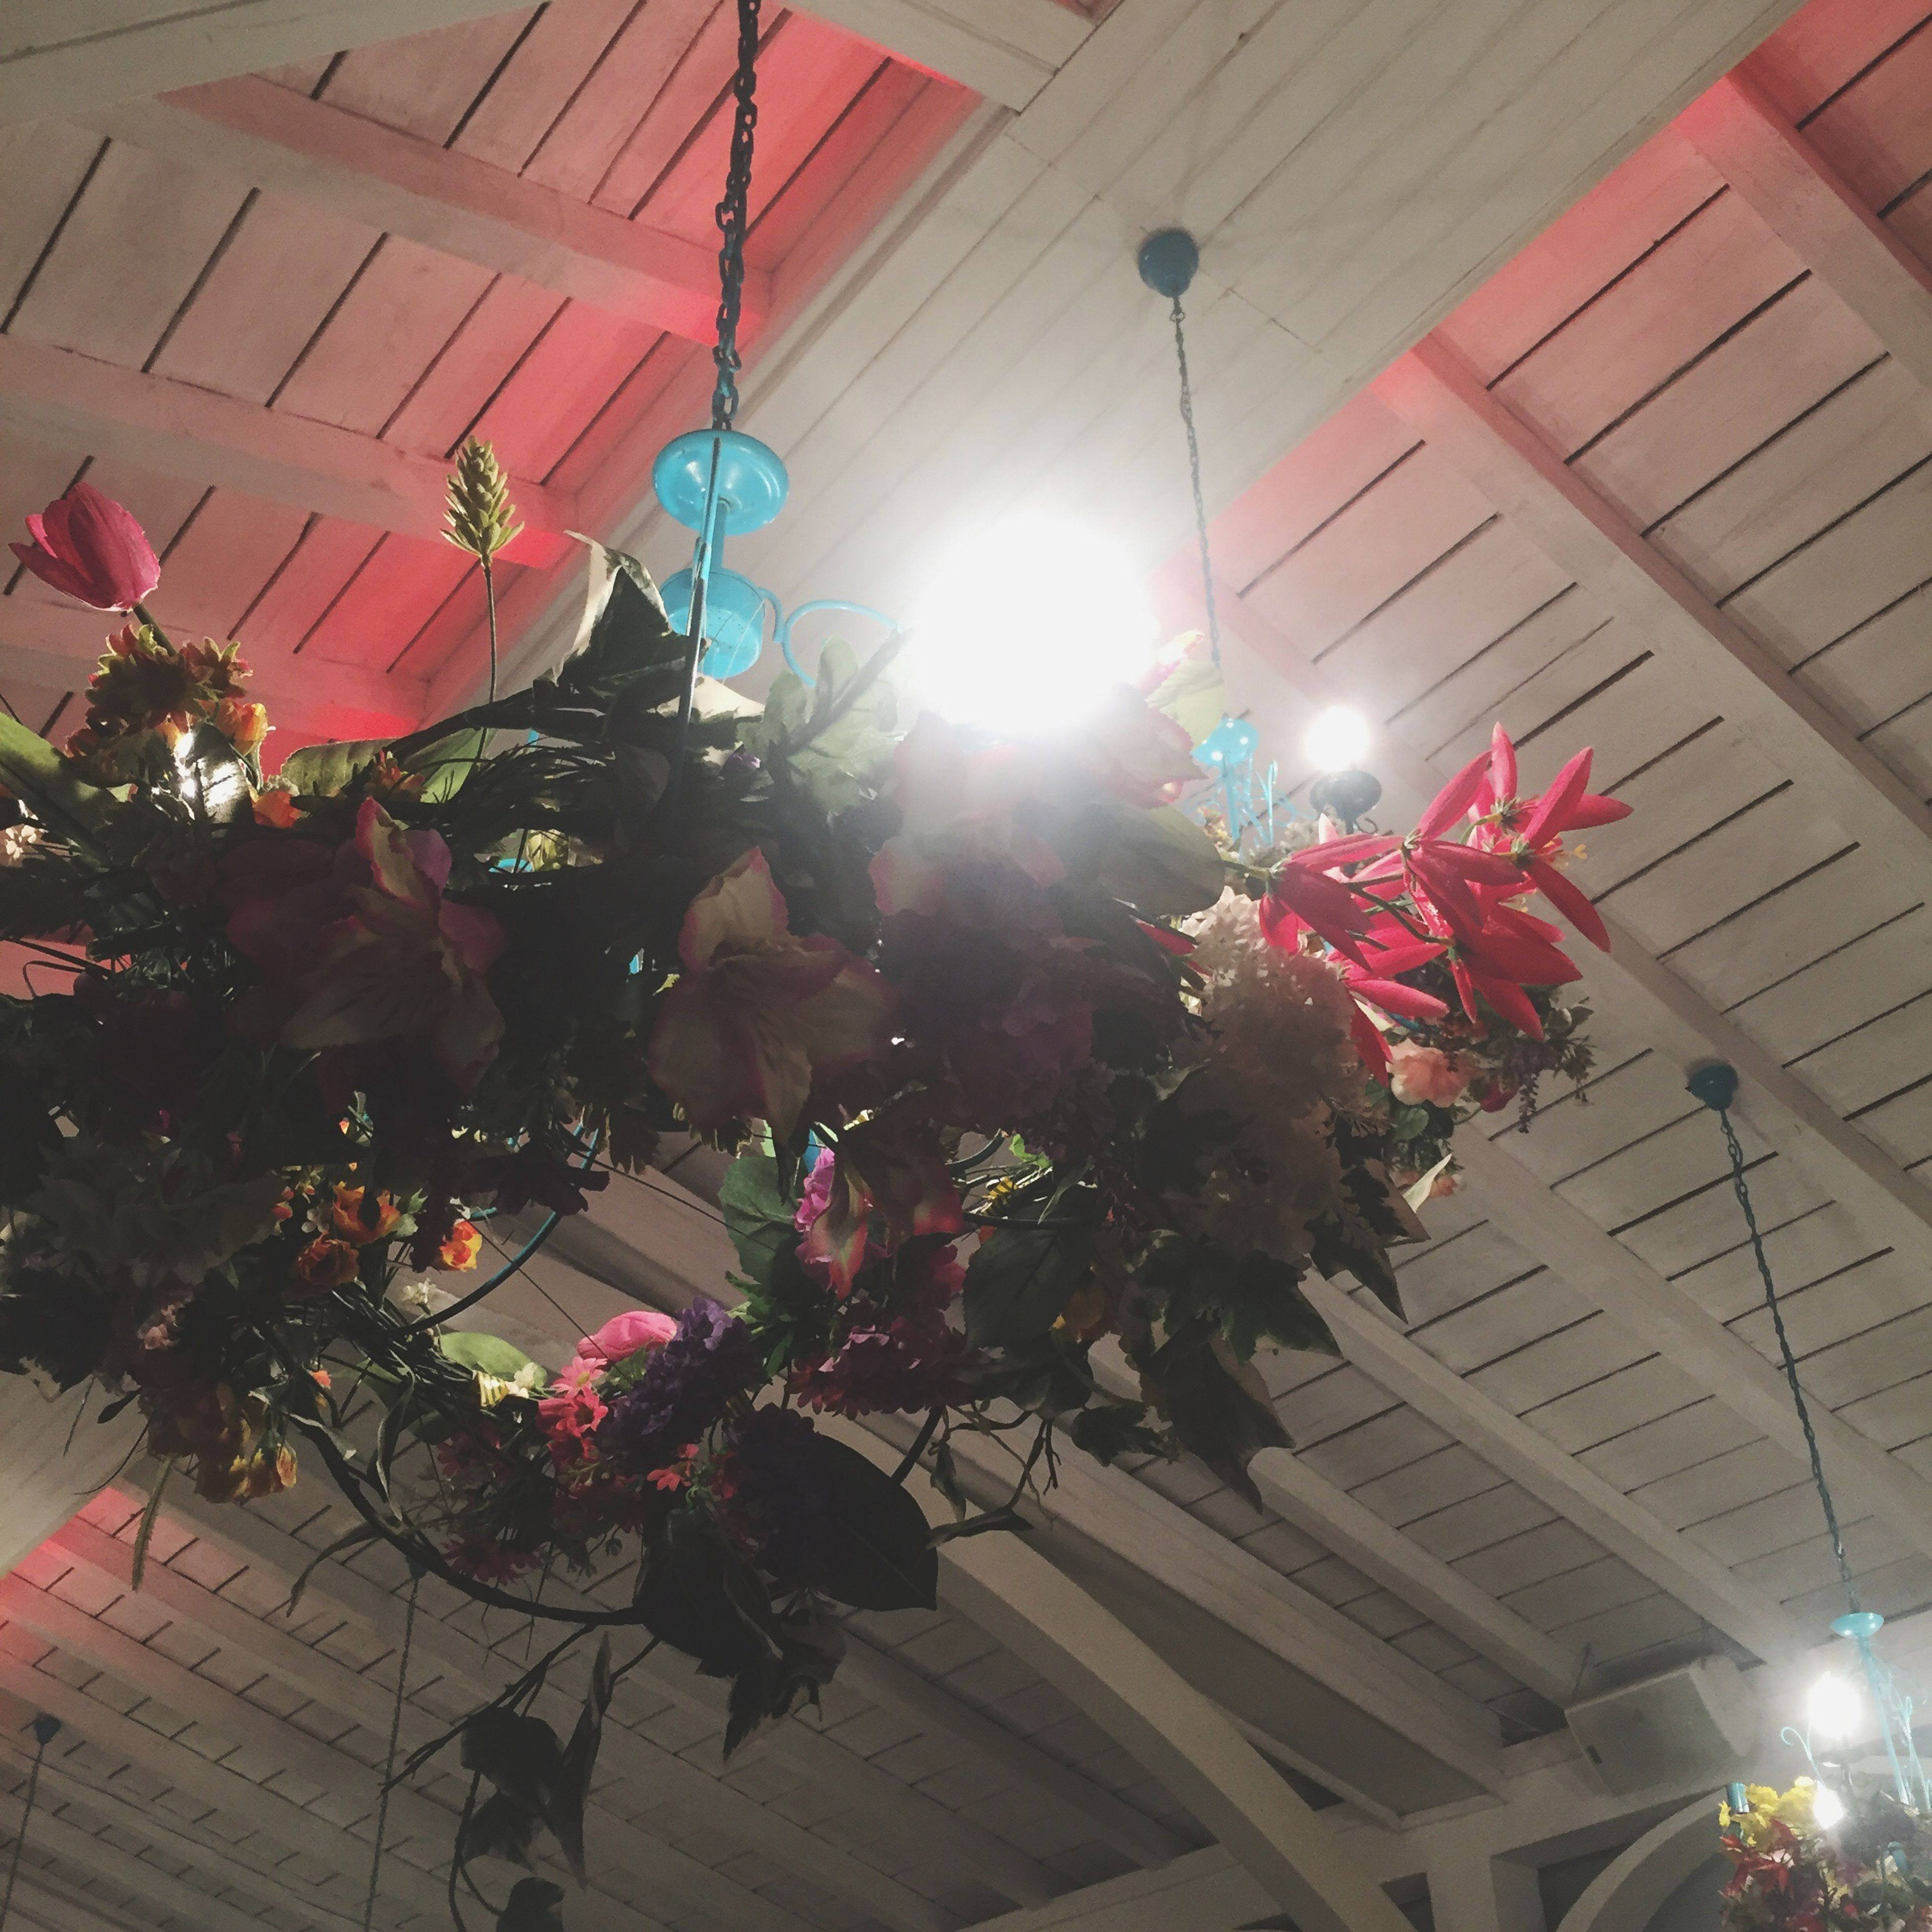 low angle view, illuminated, lighting equipment, celebration, christmas, flower, no people, indoors, hanging, christmas lights, tree, night, christmas decoration, architecture, building exterior